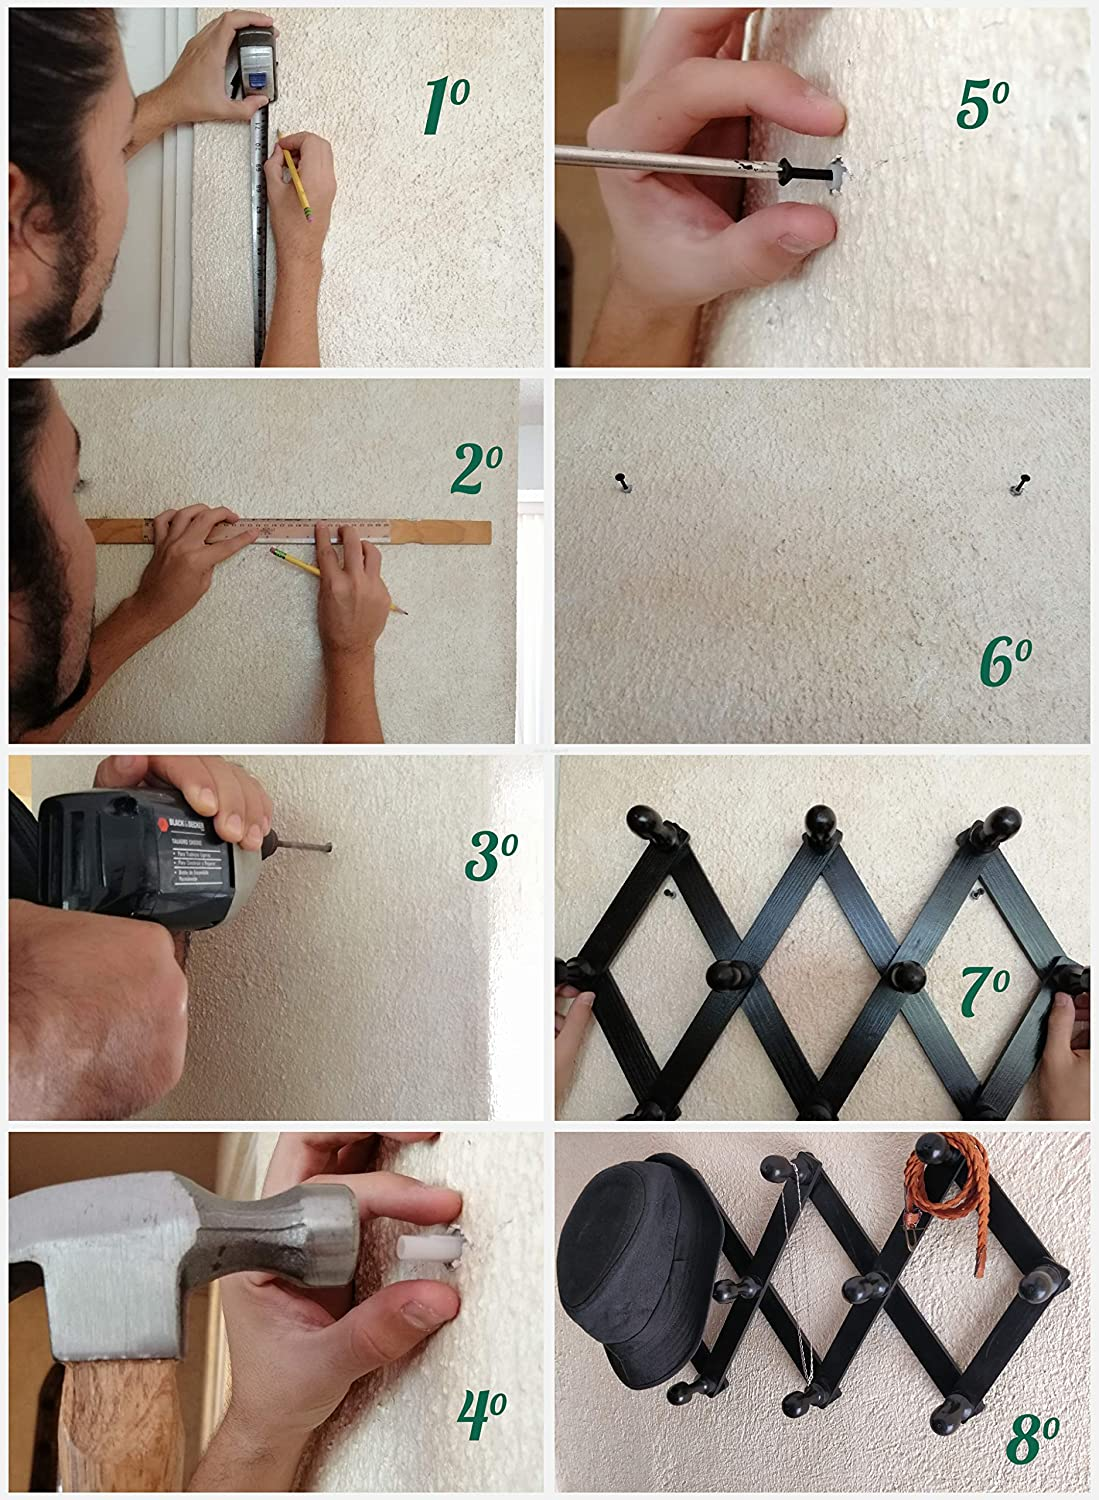 Amazon.com: Perchero de pared con 10 clavijas de madera ...